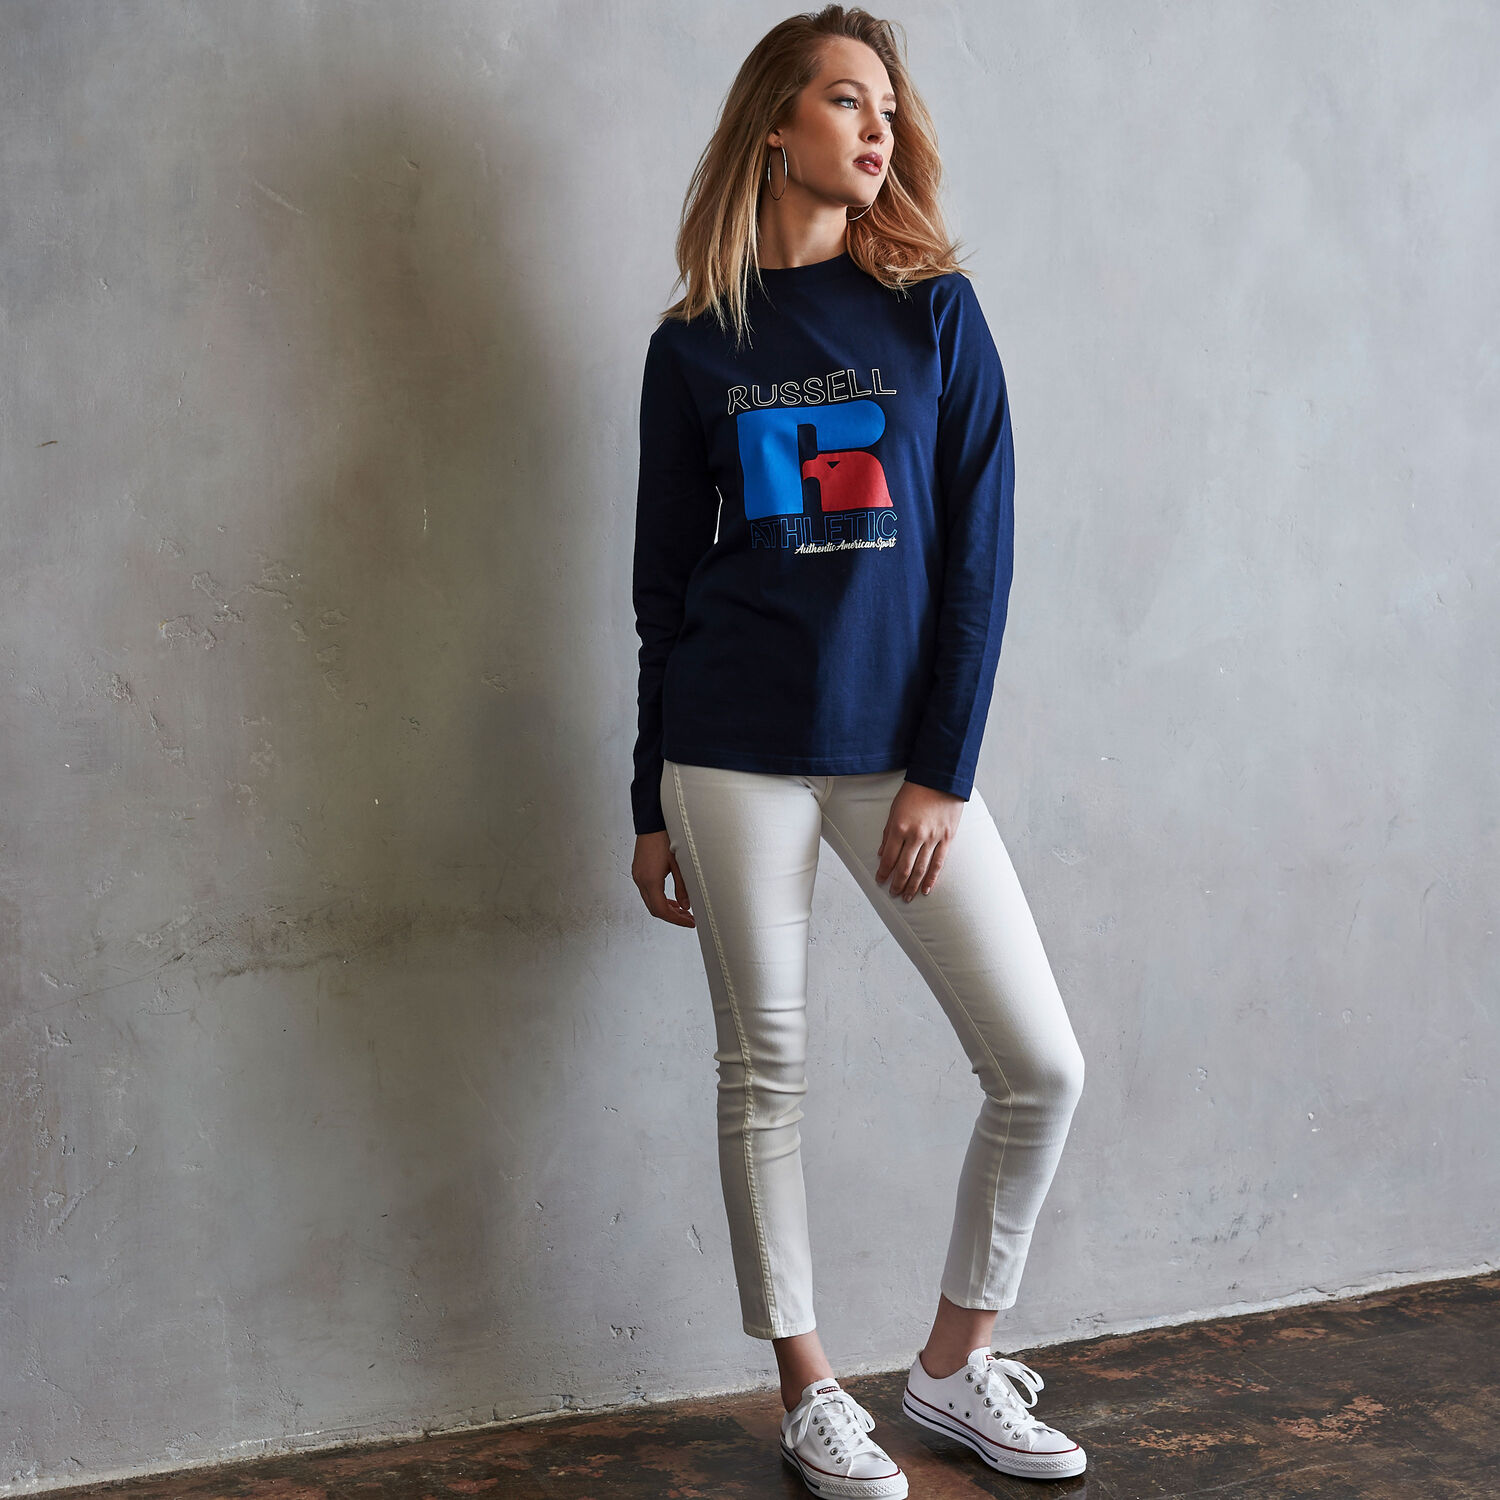 8b586b74771 Women's Heritage Graphic Long Sleeve T-Shirt - Russell US | Russell ...